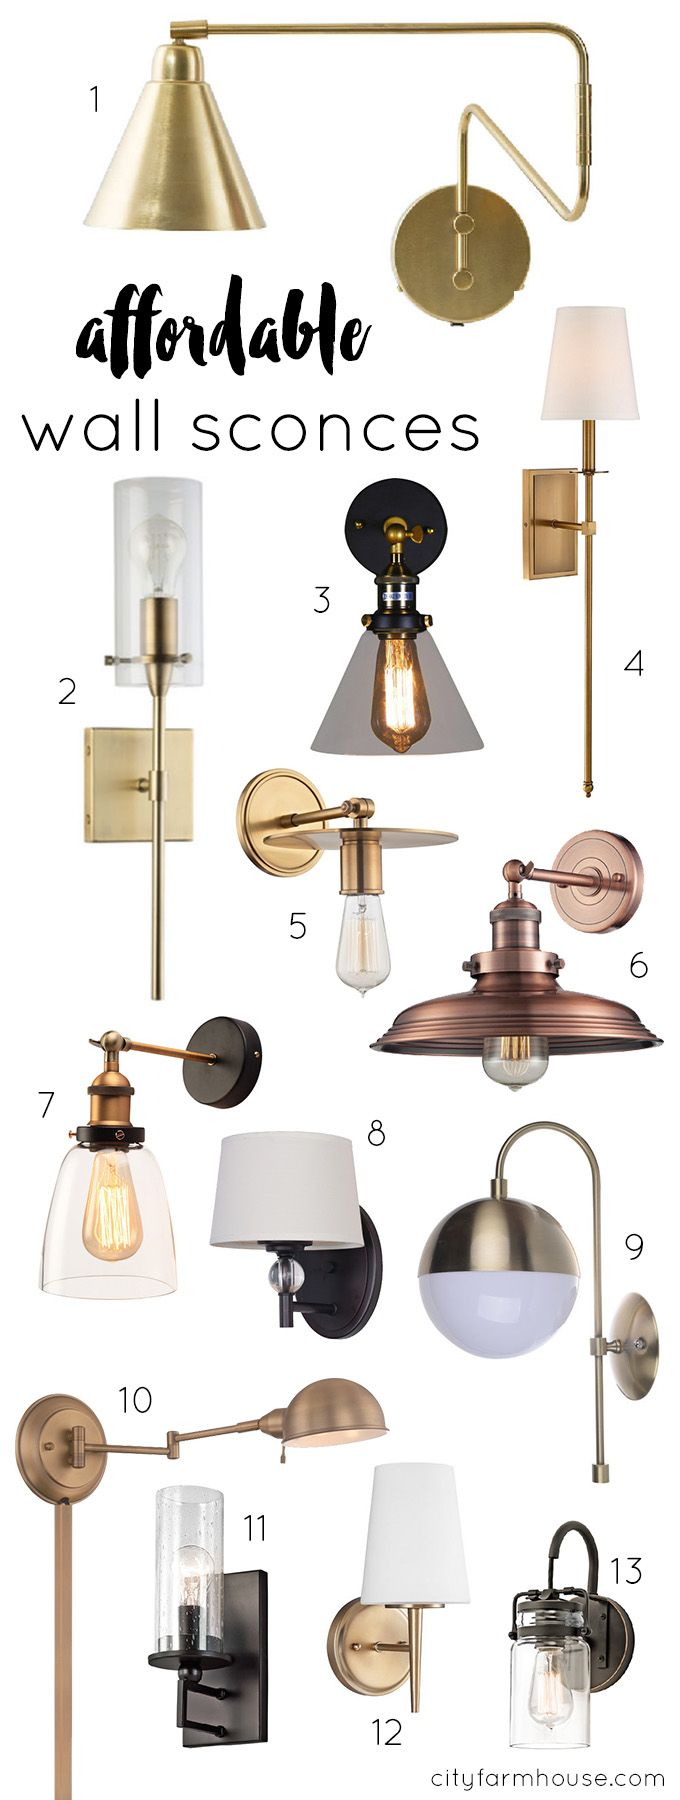 13 Affordable Wall Sconces